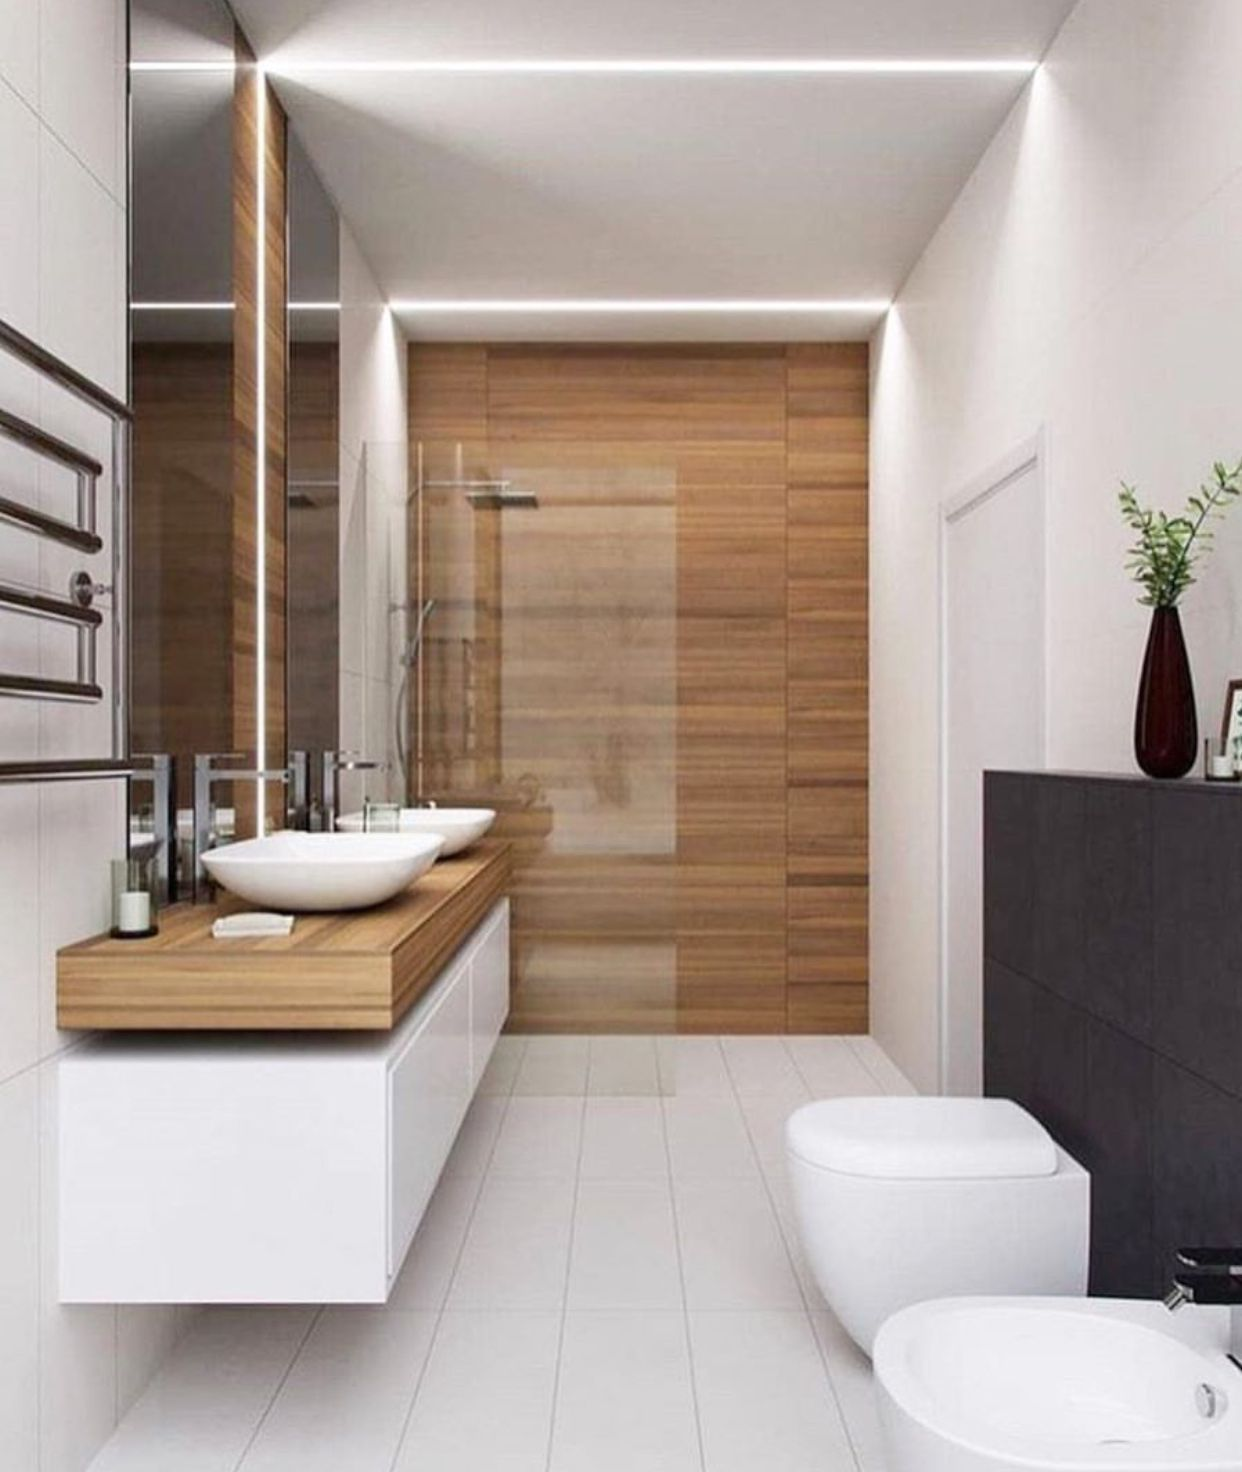 Neue Strickmode 2020 Neue Strickmode Neue In 2020 Bathroom Design Small Small Bathroom Remodel Cost Bathroom Remodel Designs